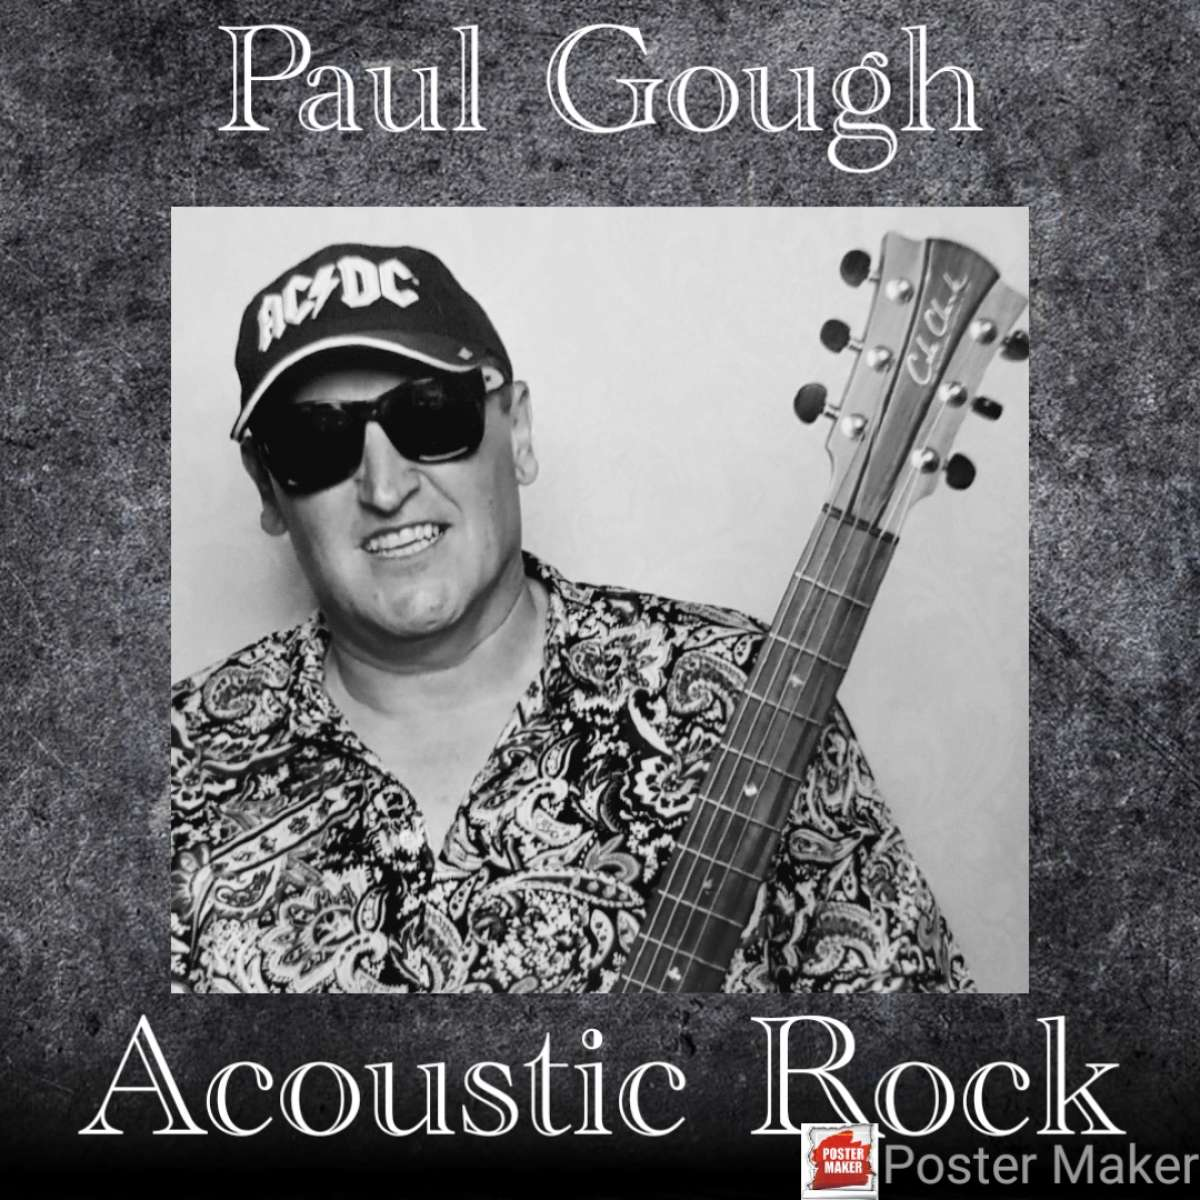 Acoustic Rock Livestream - Paul Gough  - Internet - Weltweit Online